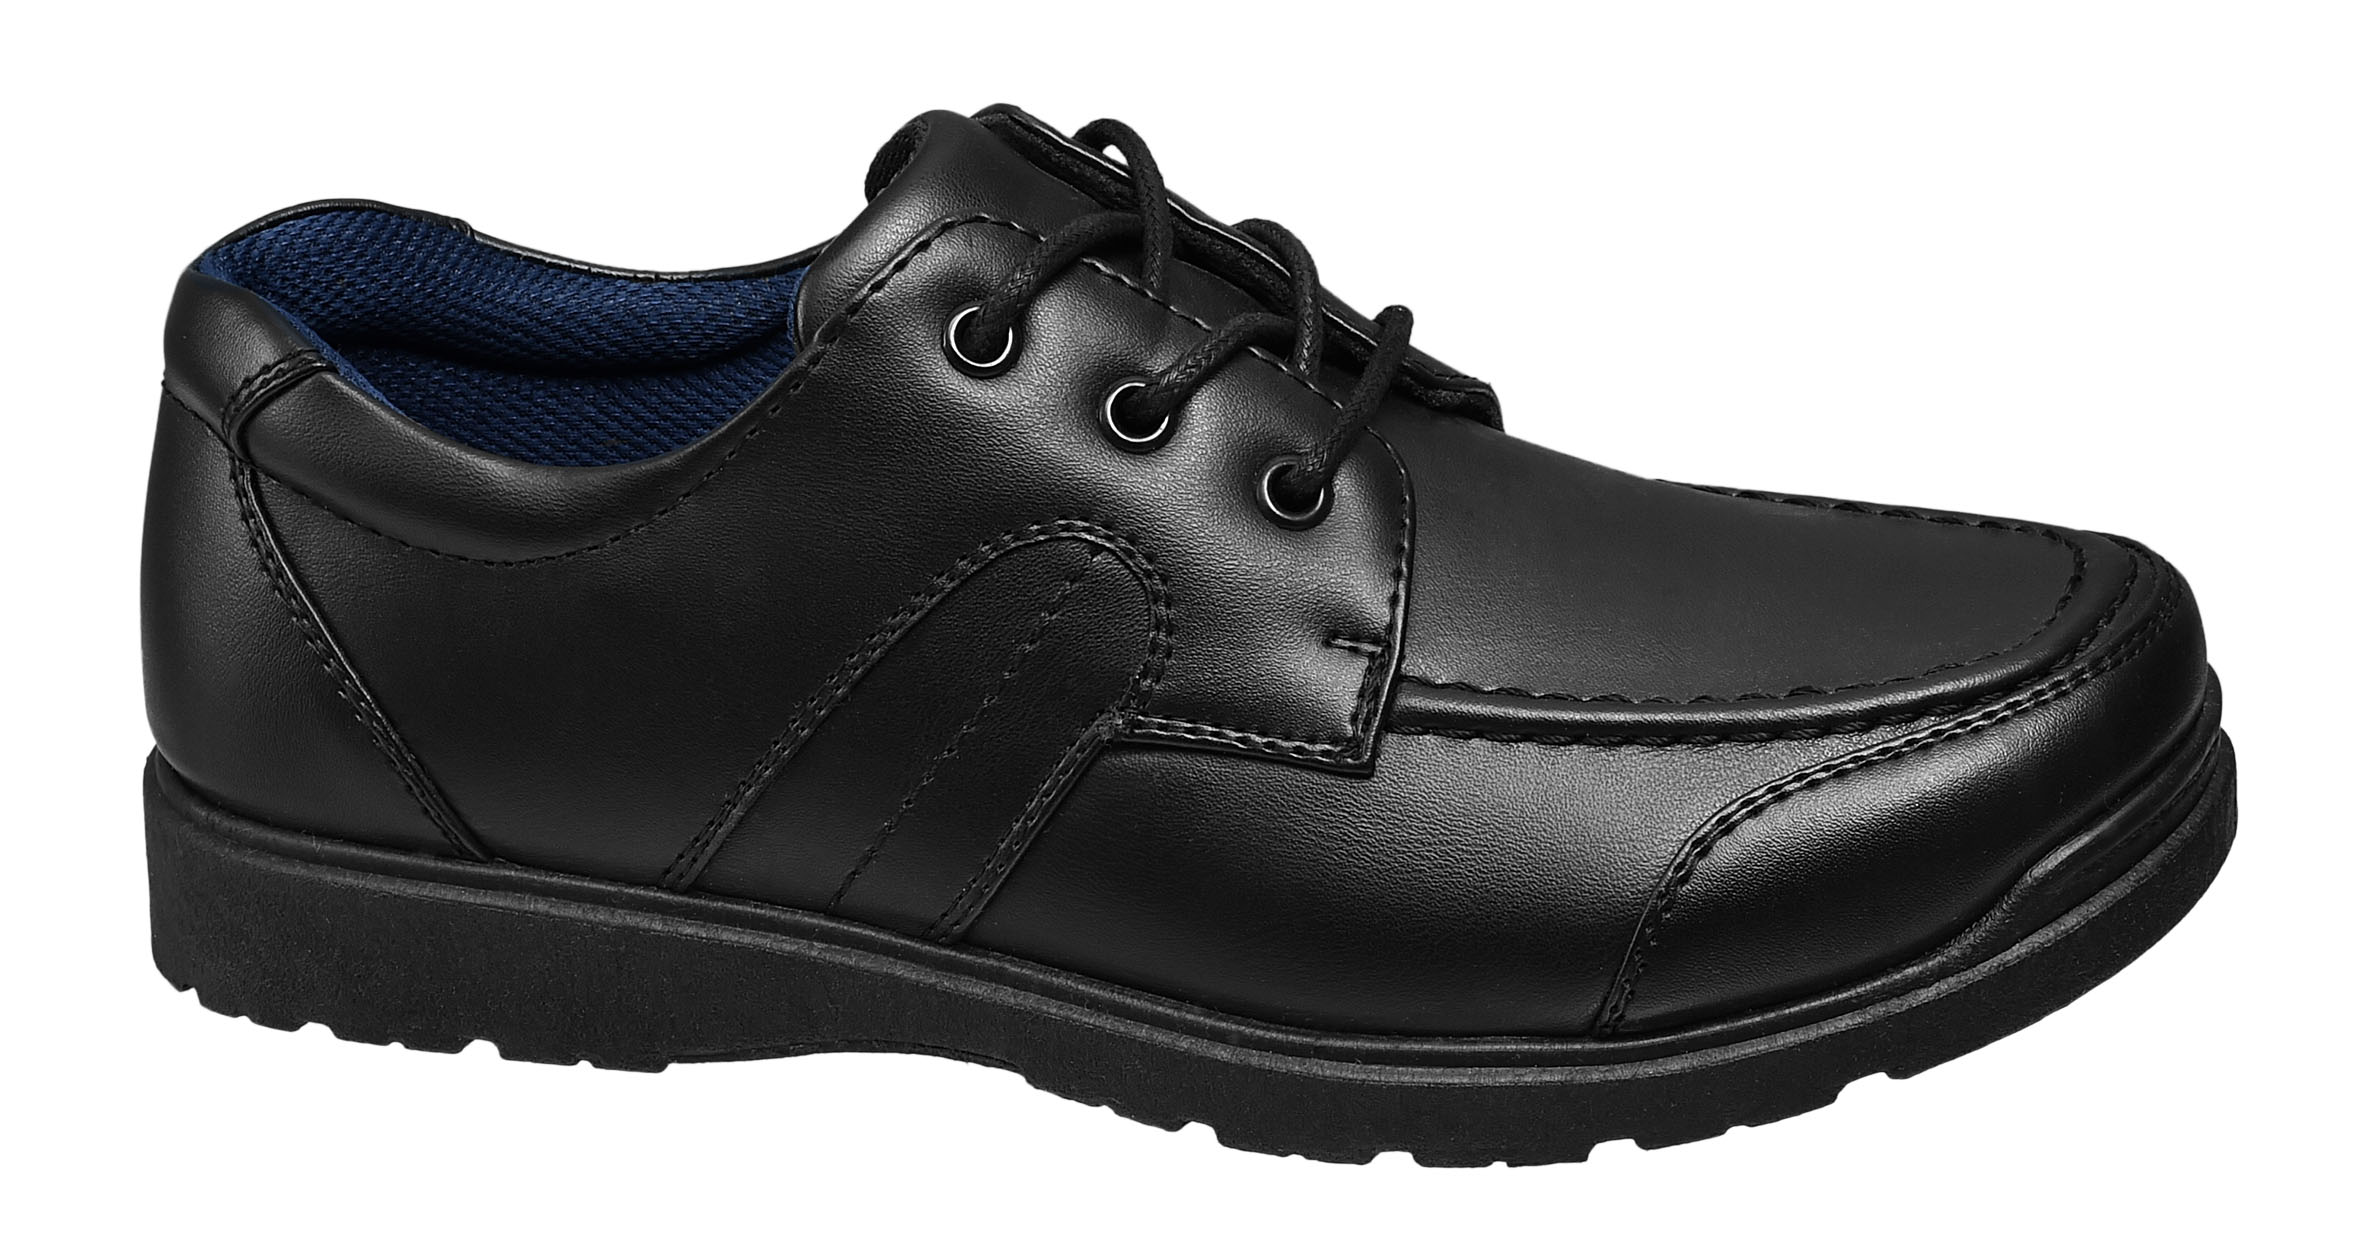 Teen Boy Lace Up School Shoes, £17.99 - buy one get one half price offer available, Deichmann